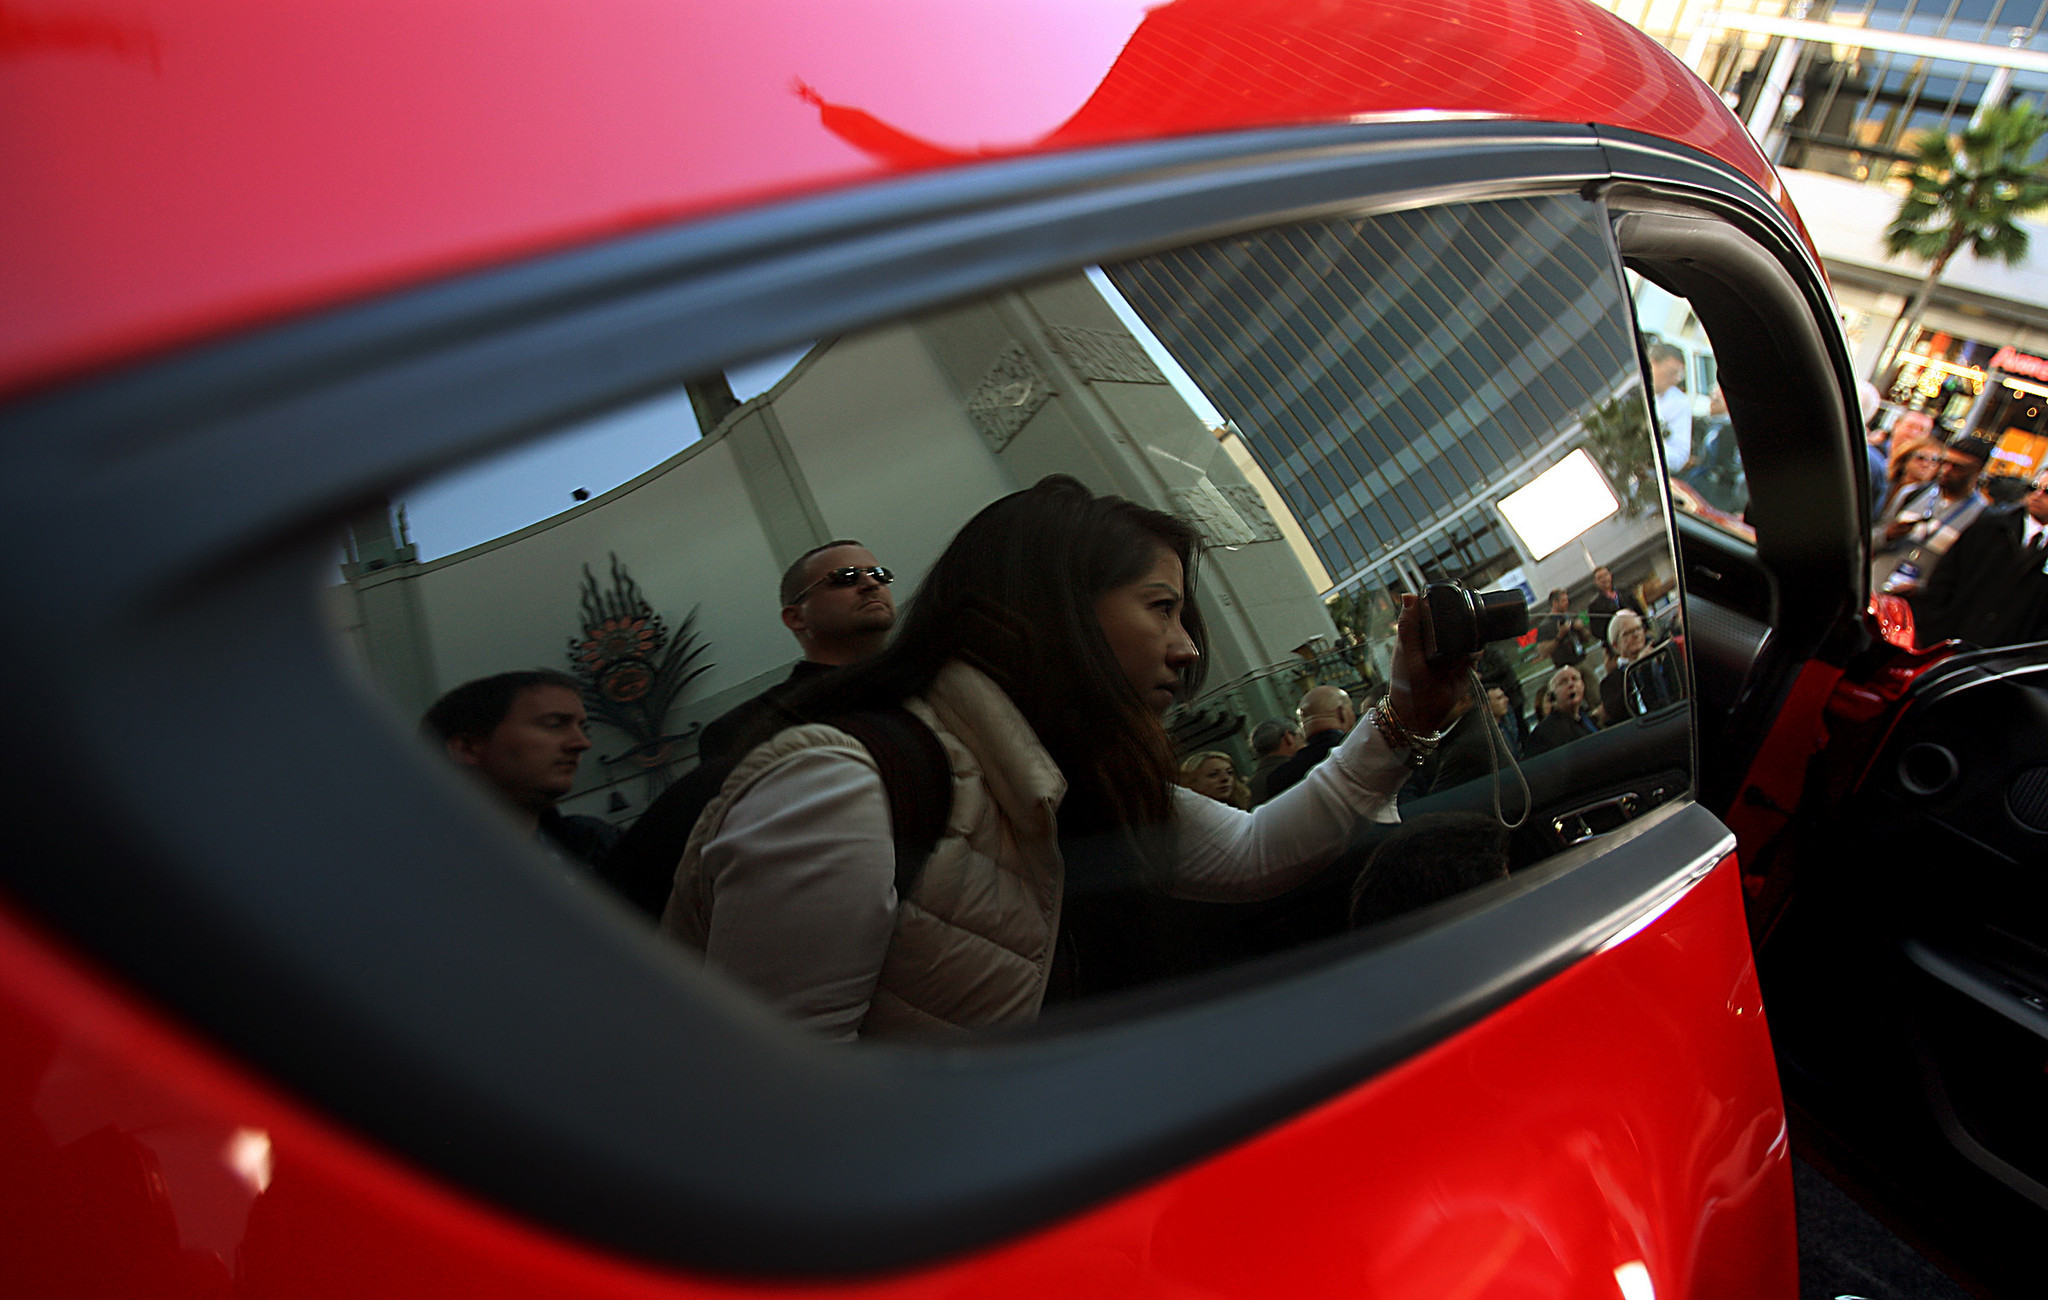 Ford announces pricing of 2015 Mustang lineup